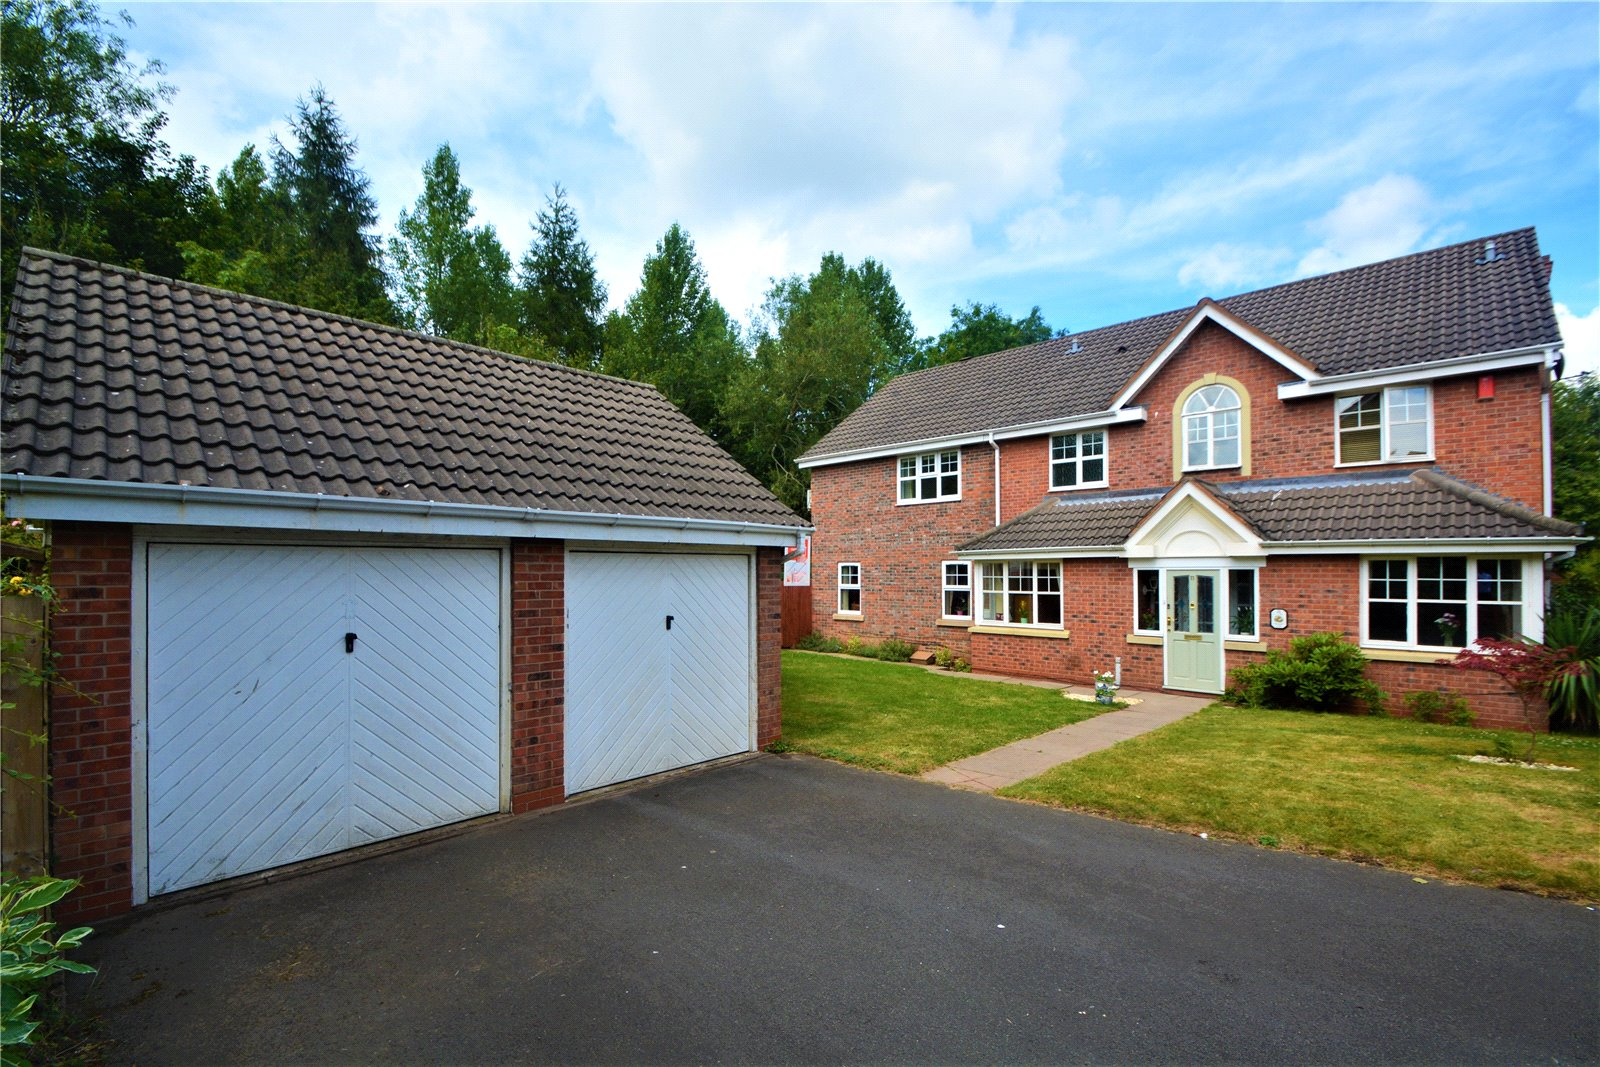 11 Checkley Lane, St. Georges, Telford, TF2